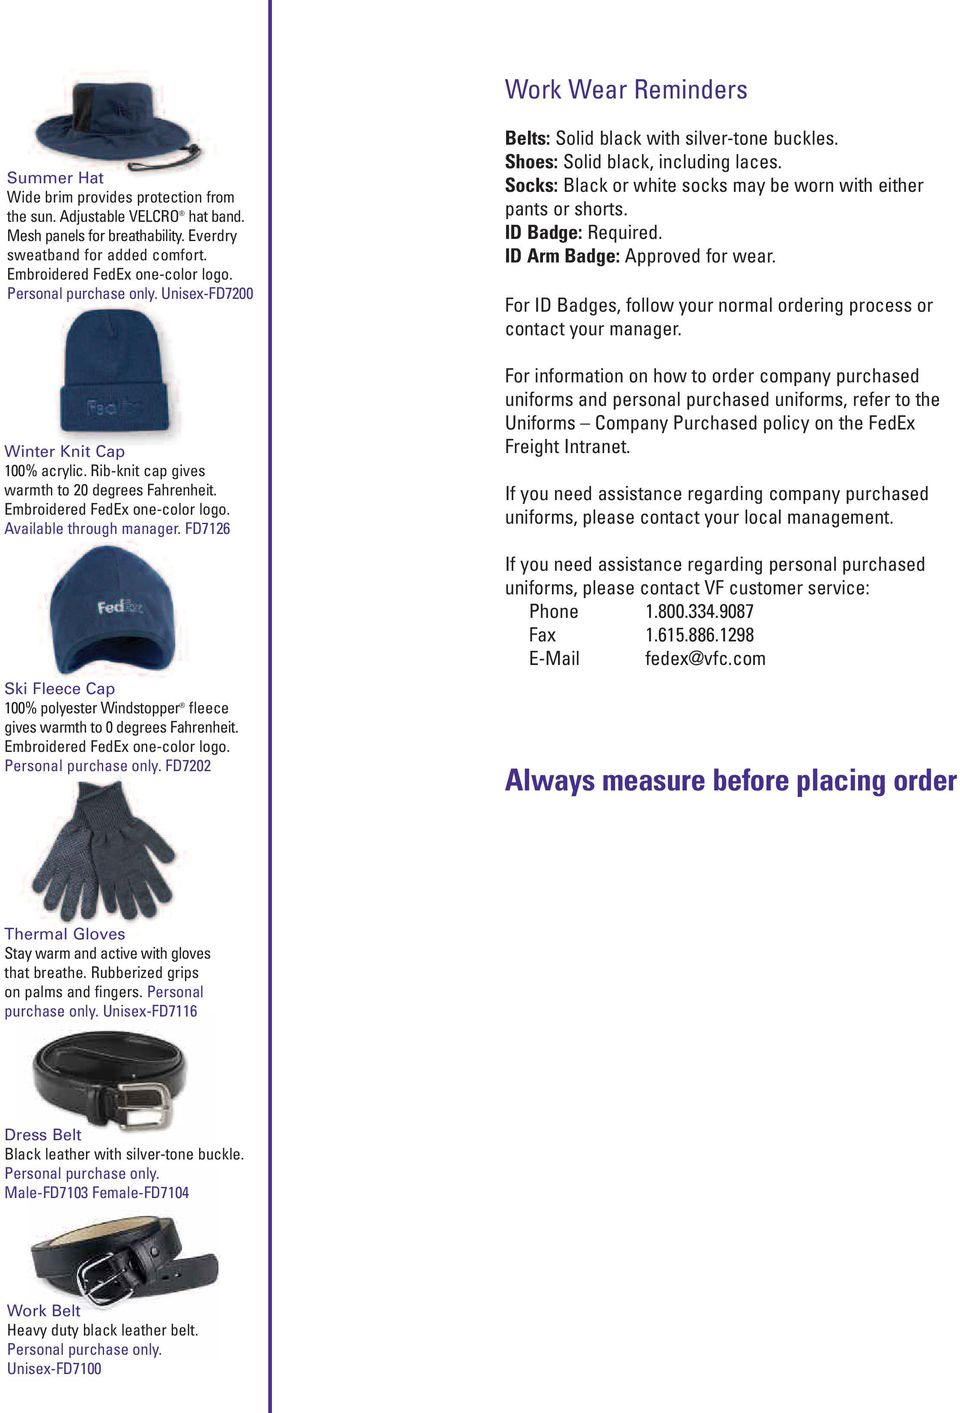 FD7126 Ski Fleece Cap 100% polyester Windstopper fleece gives warmth to 0 degrees Fahrenheit. Embroidered FedEx one-color logo. FD7202 Belts: Solid black with silver-tone buckles.